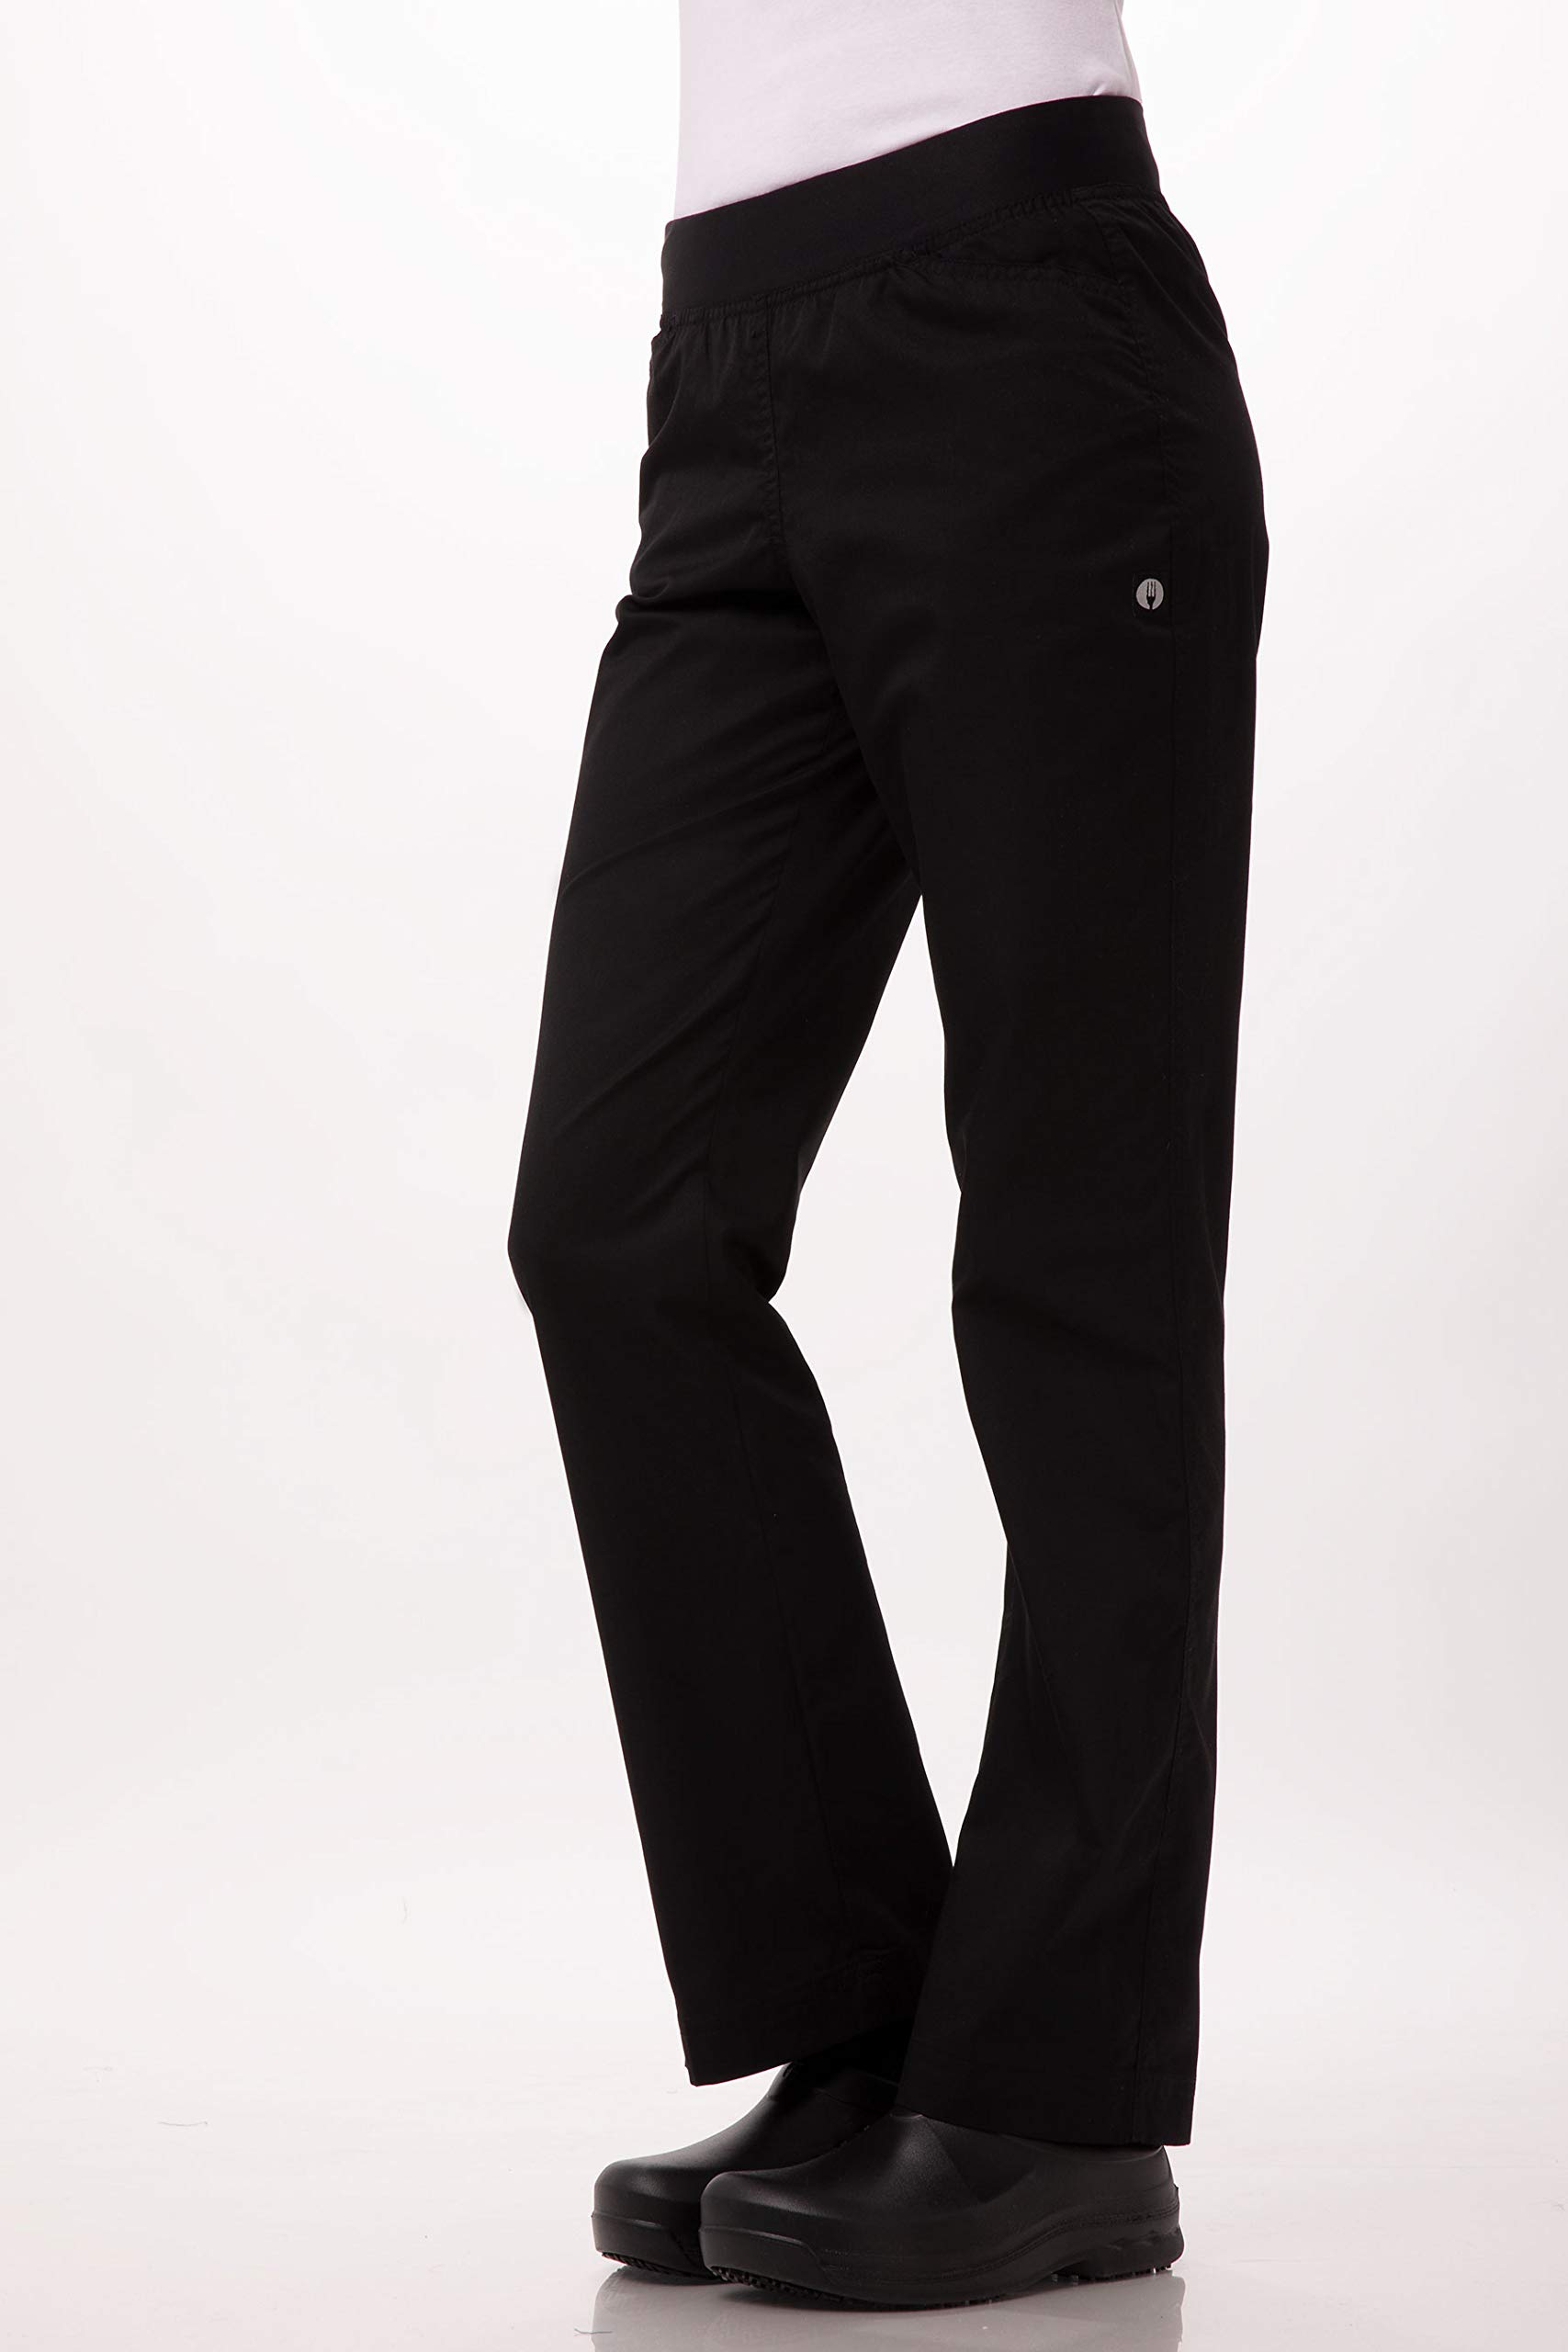 Chef Works Women's Lightweight Slim Chef Pants, Black, XL by Chef Works